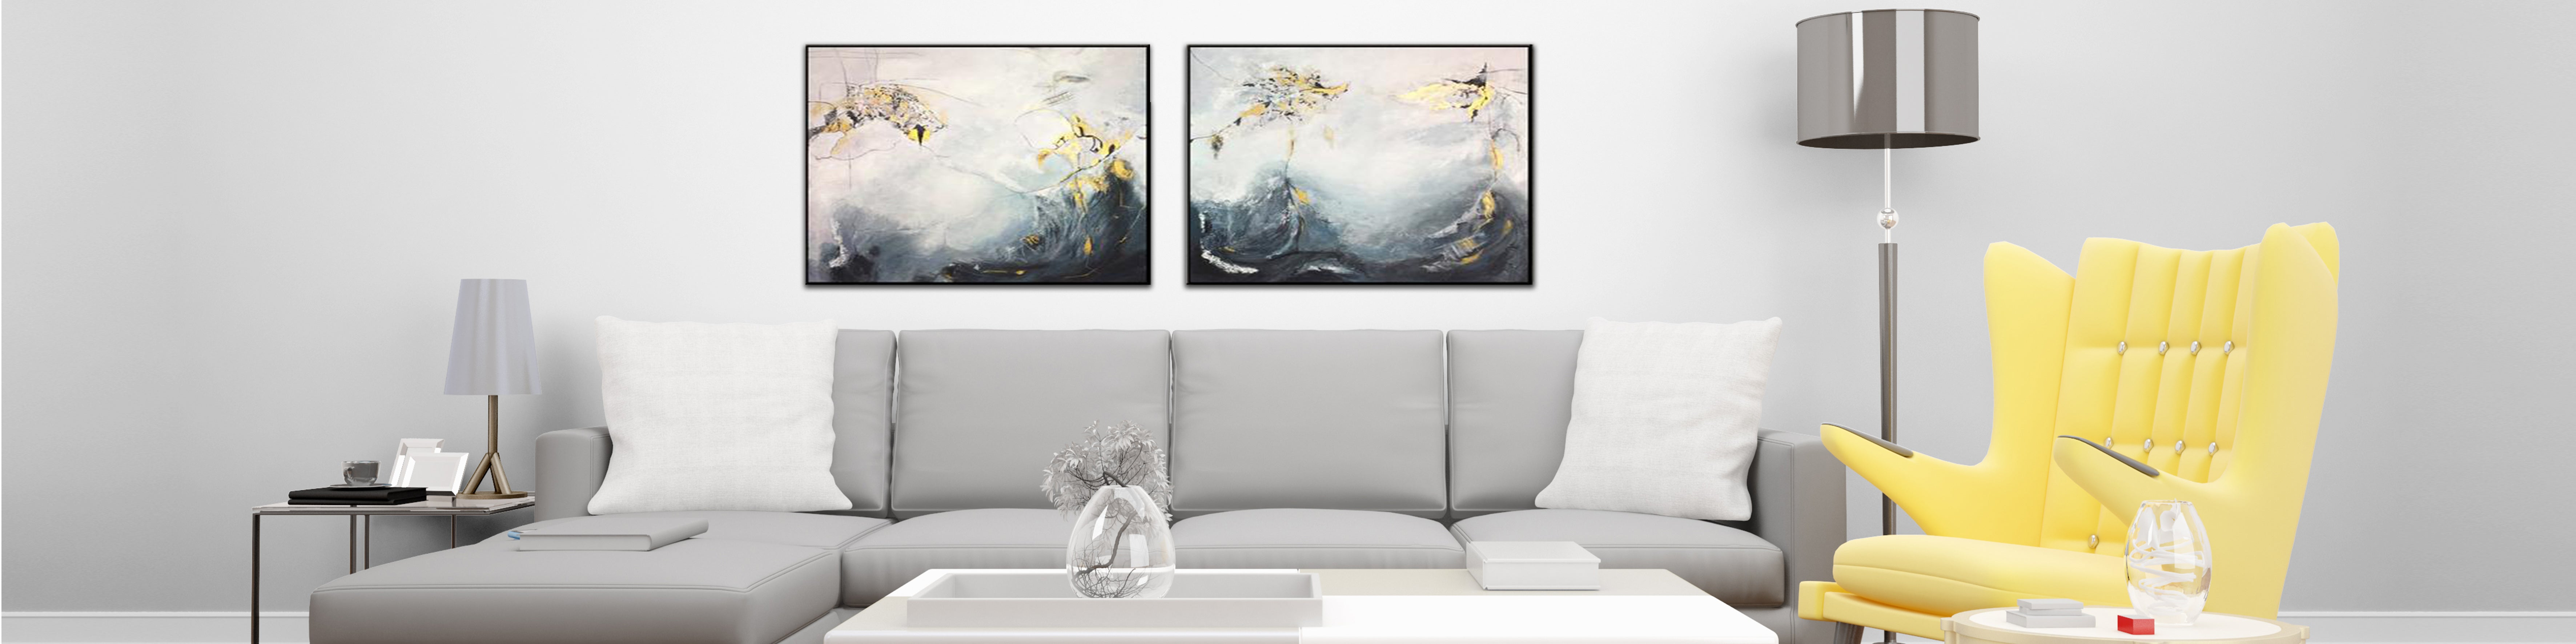 How to decorate a living room with painting acrylic